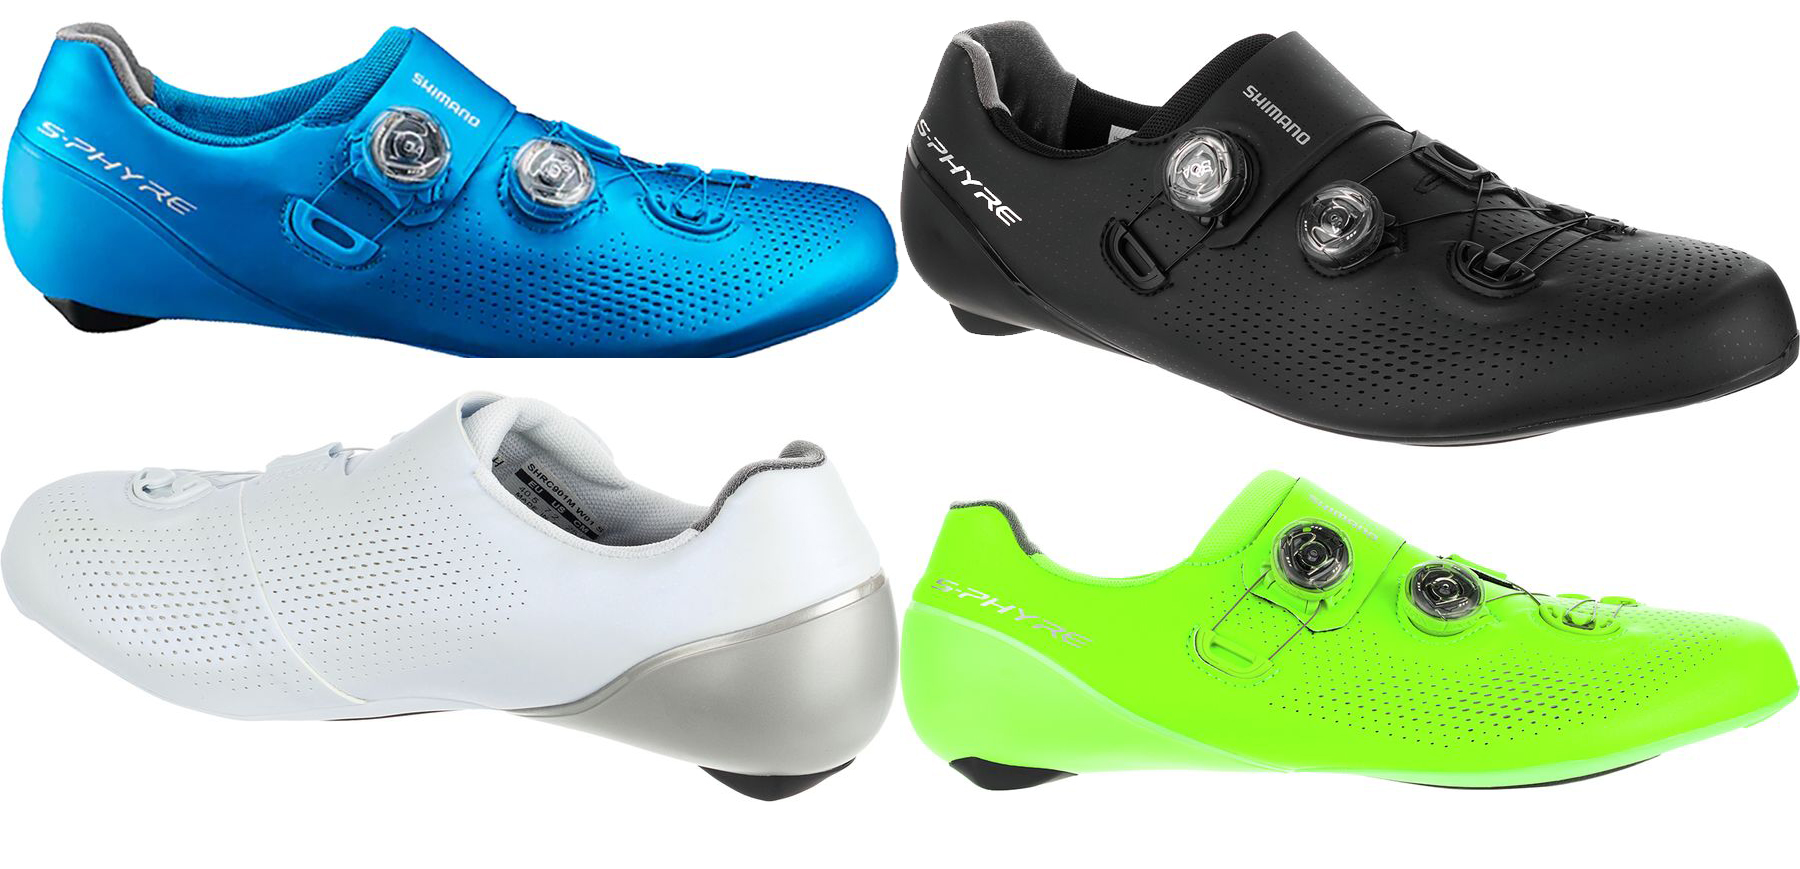 Shimano SH-RC9 S-PHYRE Cycling Shoe